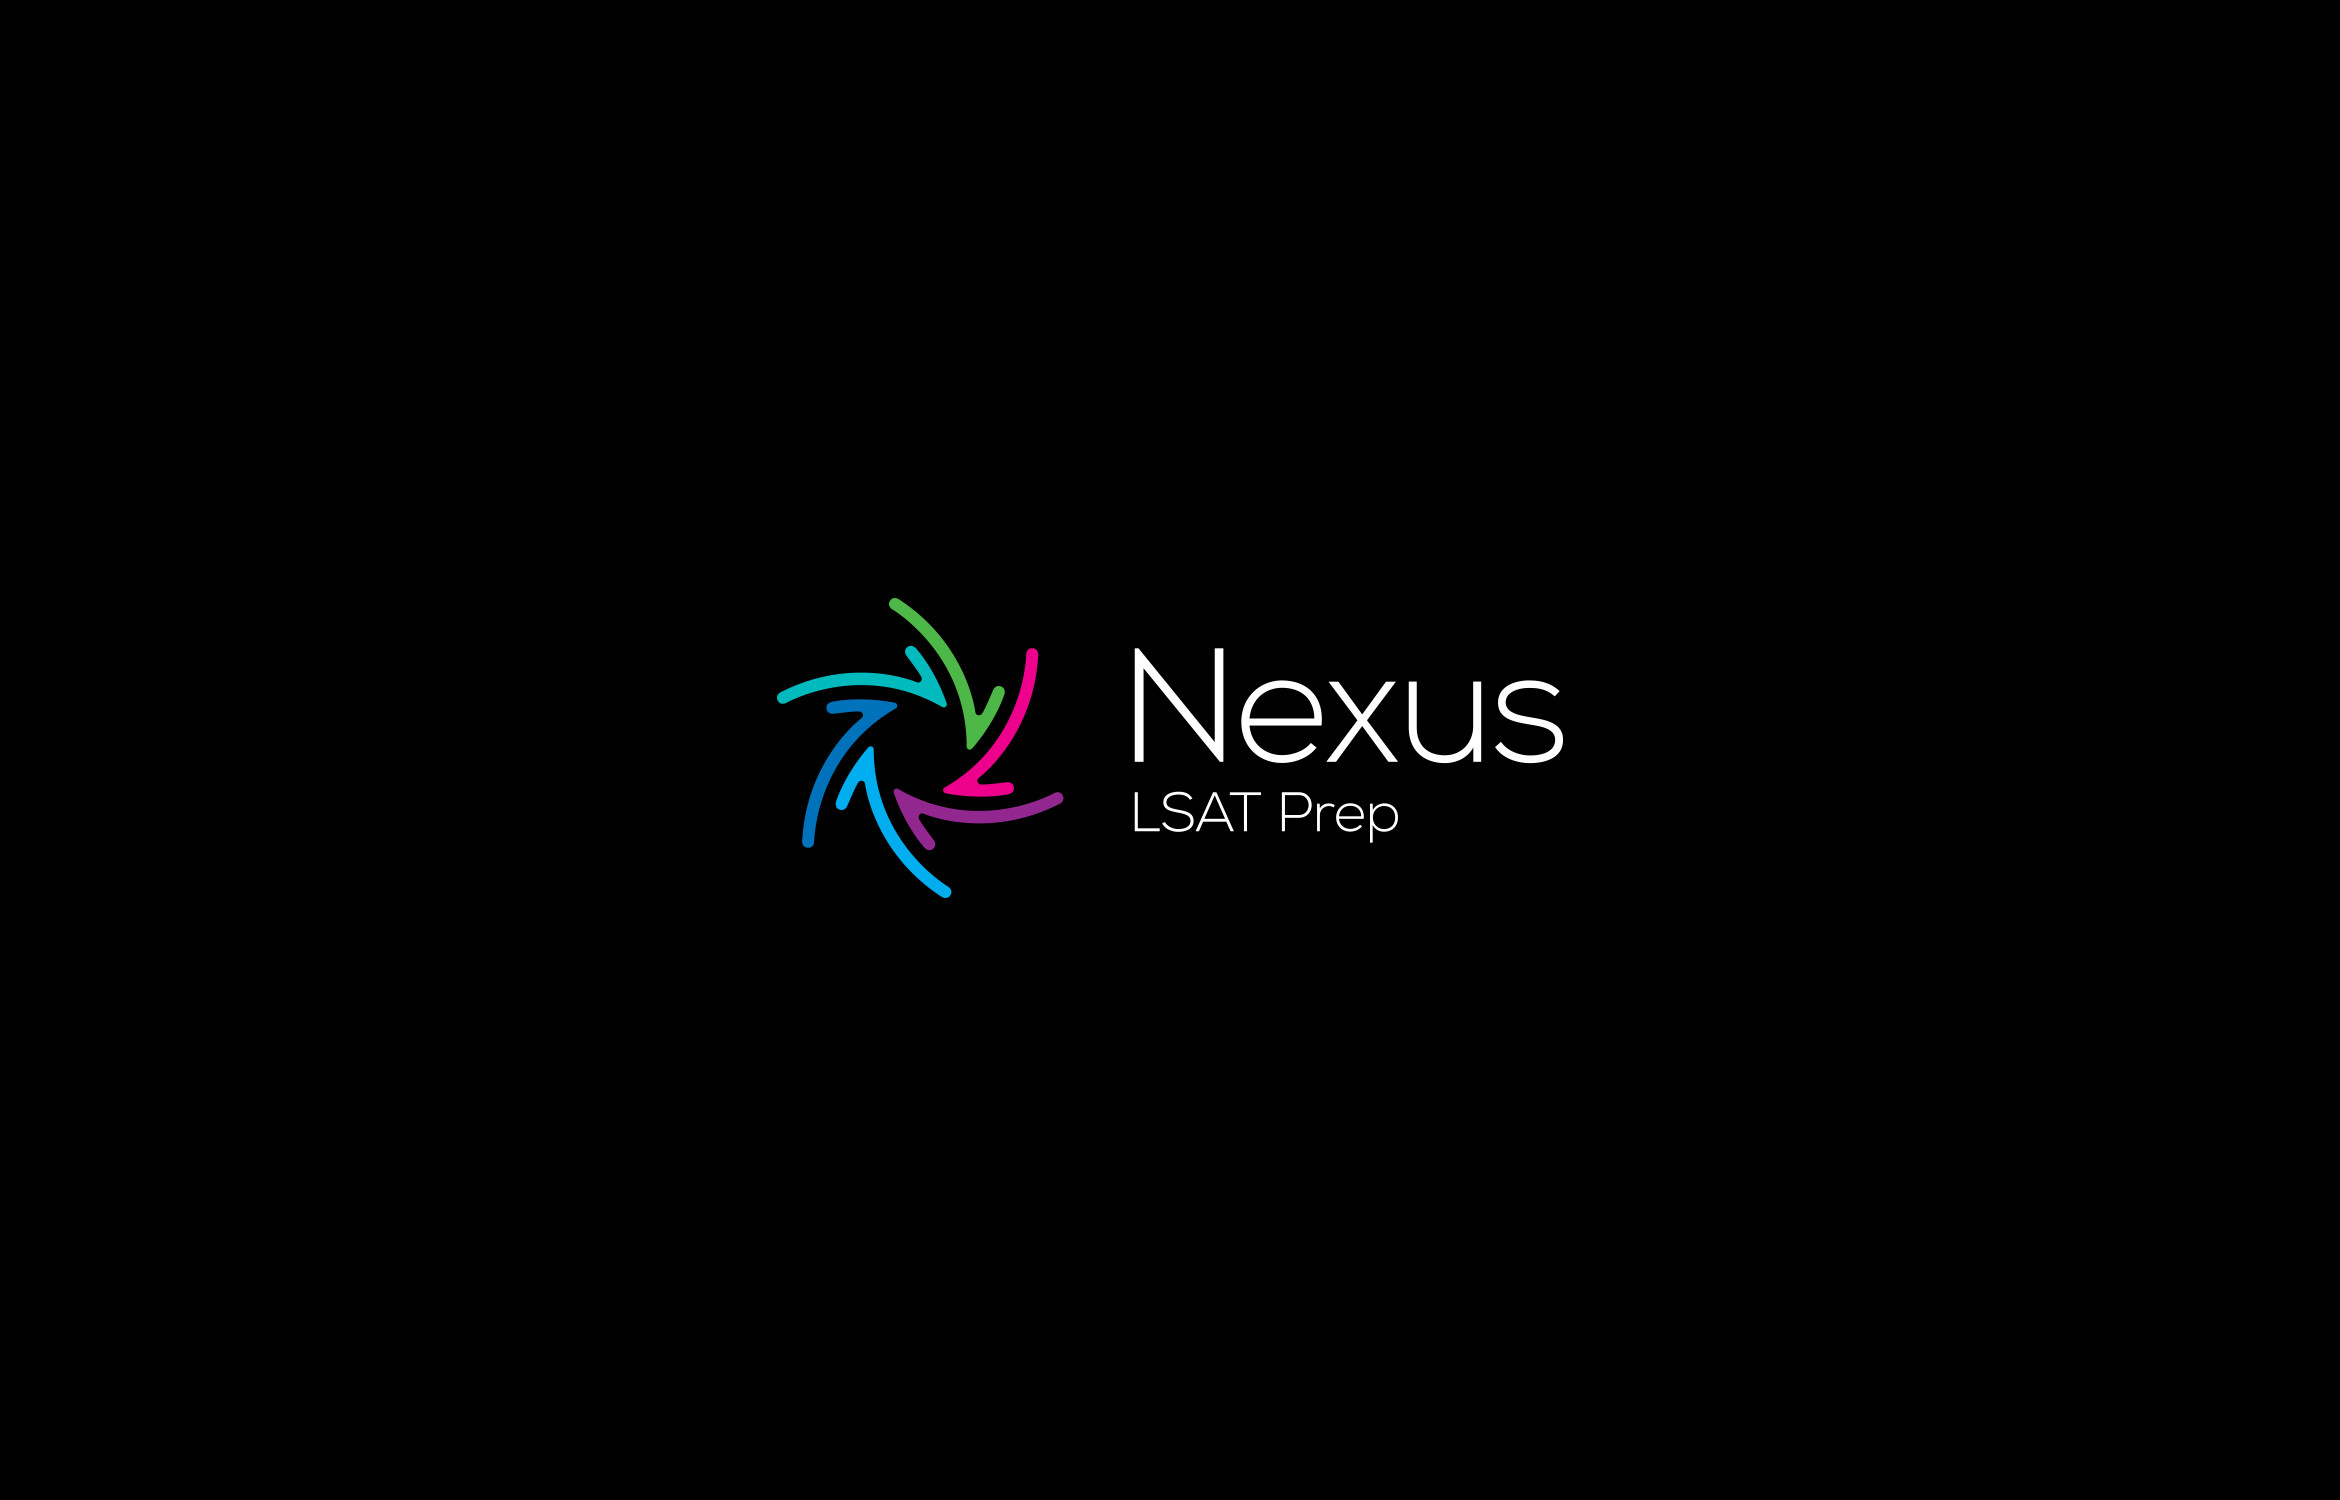 logo_nexus_reversed